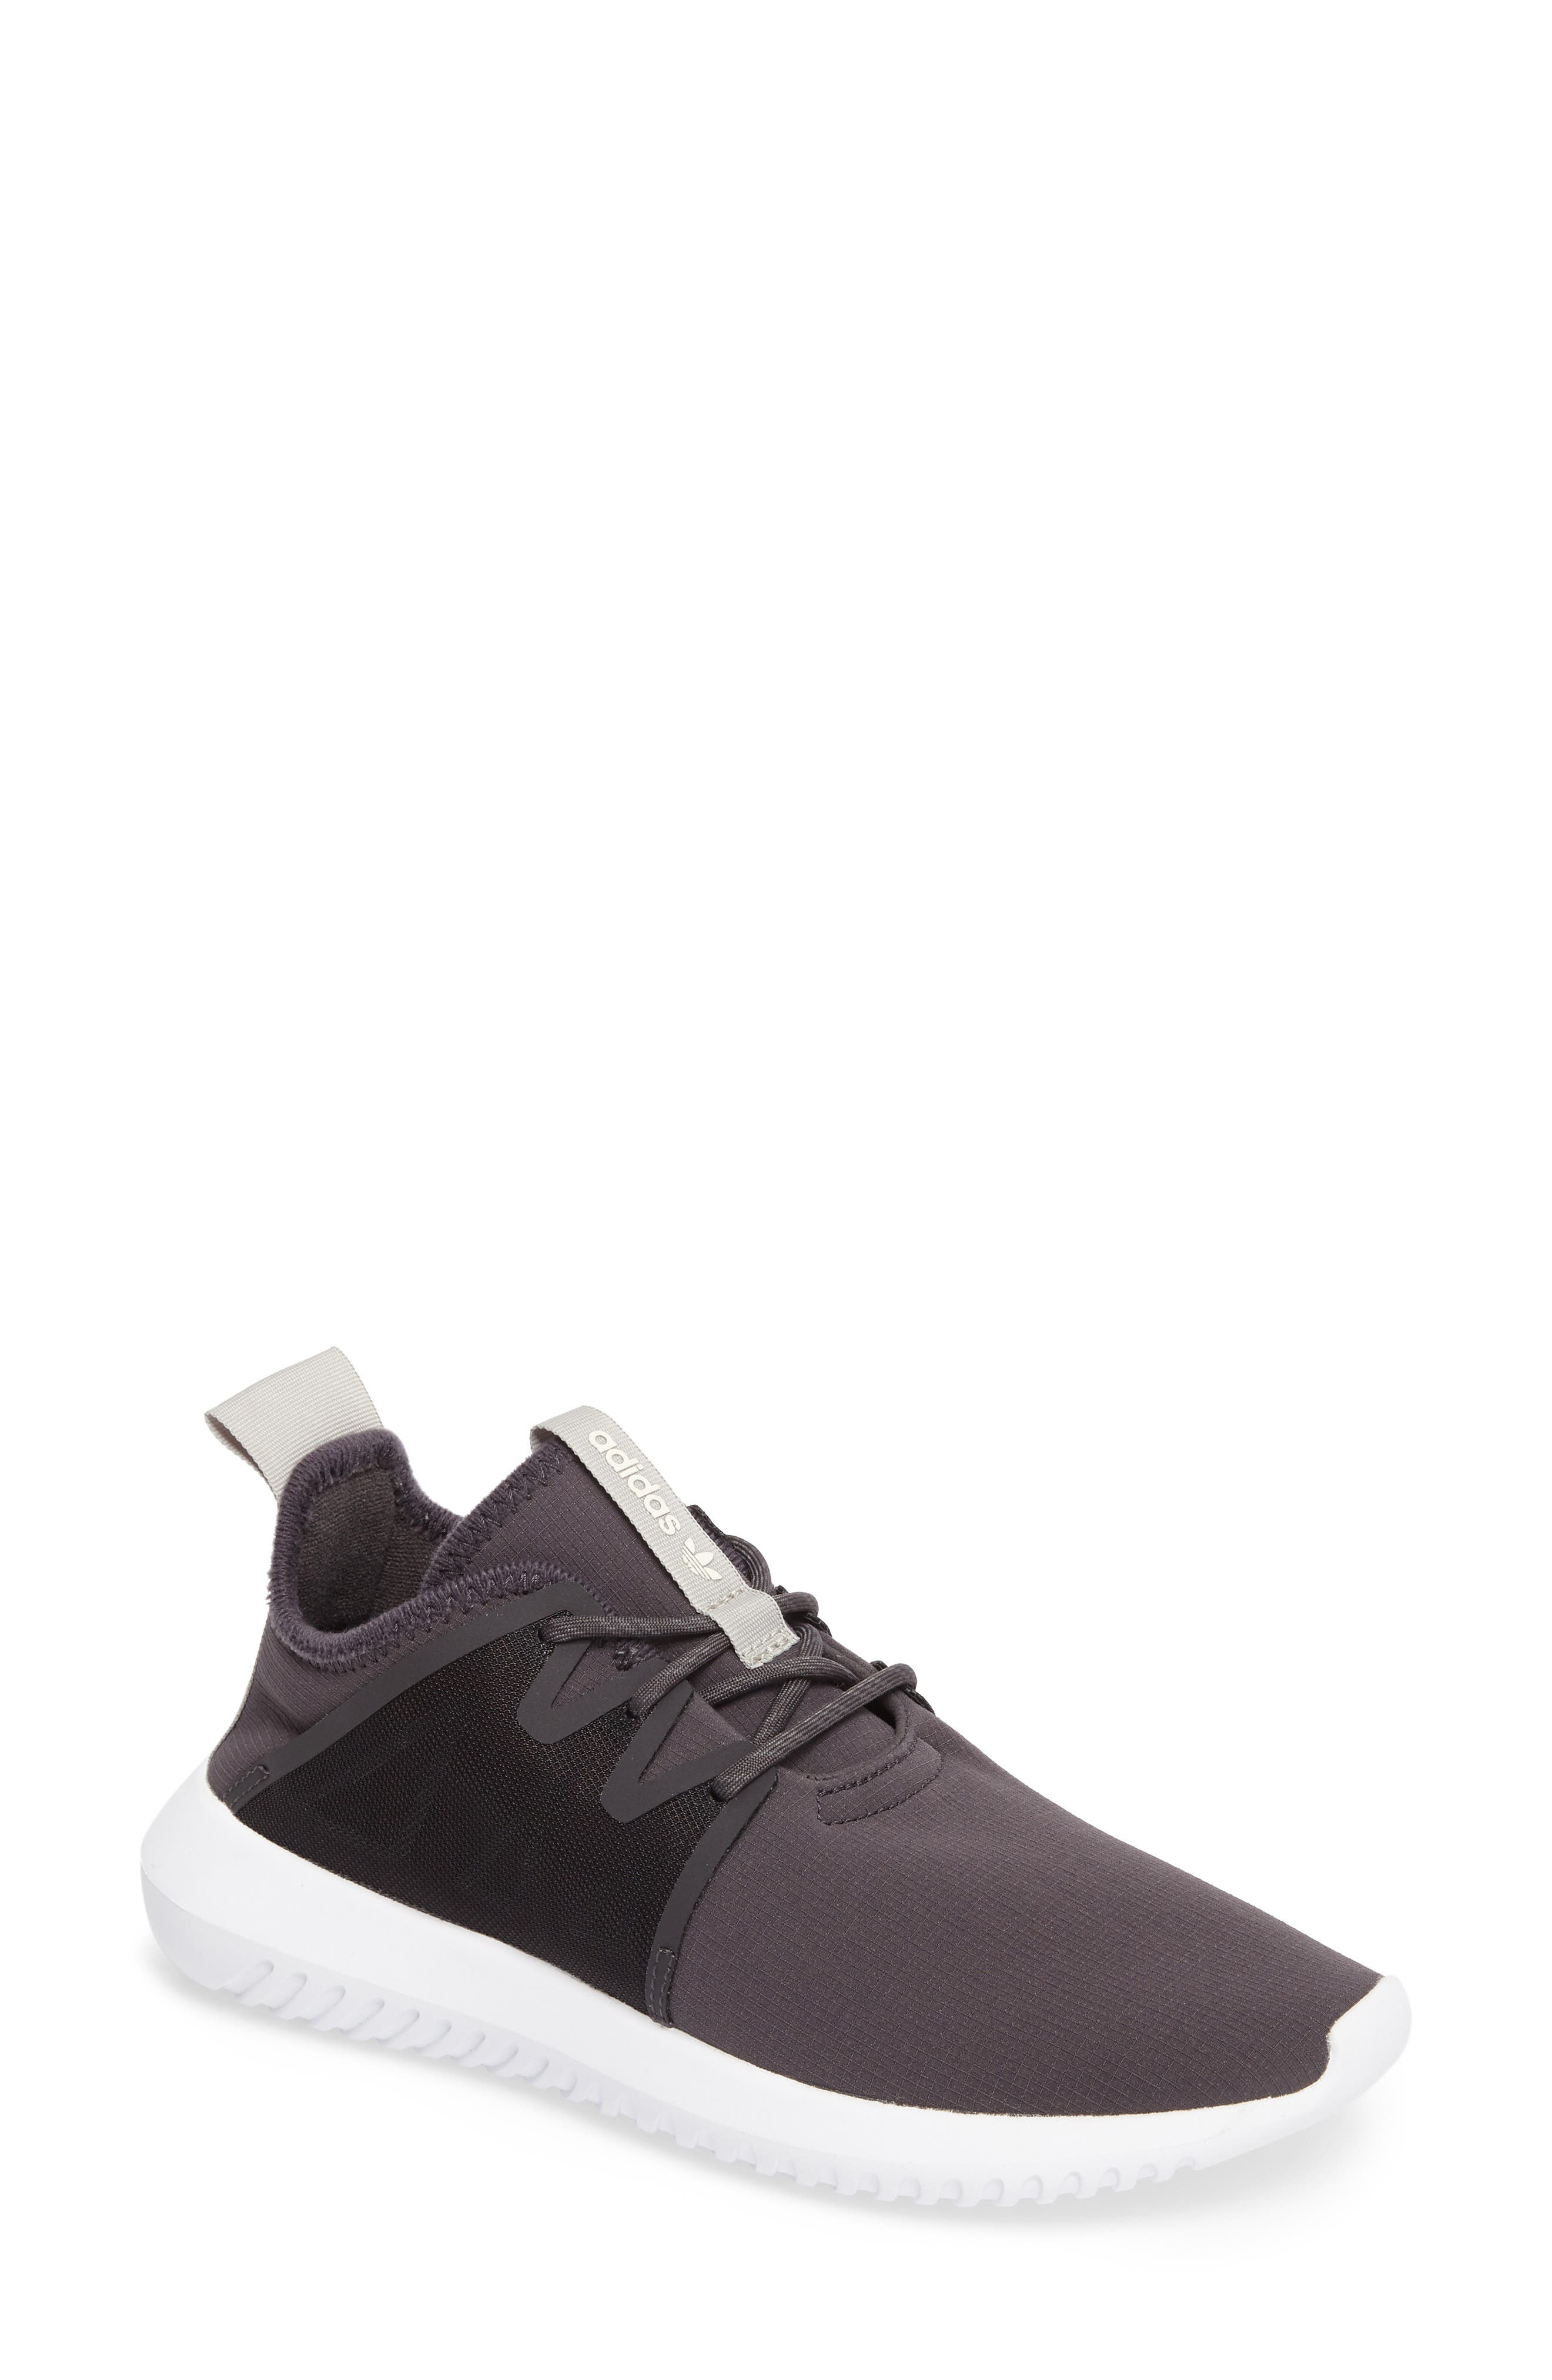 Tubular Viral 2 Sneaker,                         Main,                         color, 005